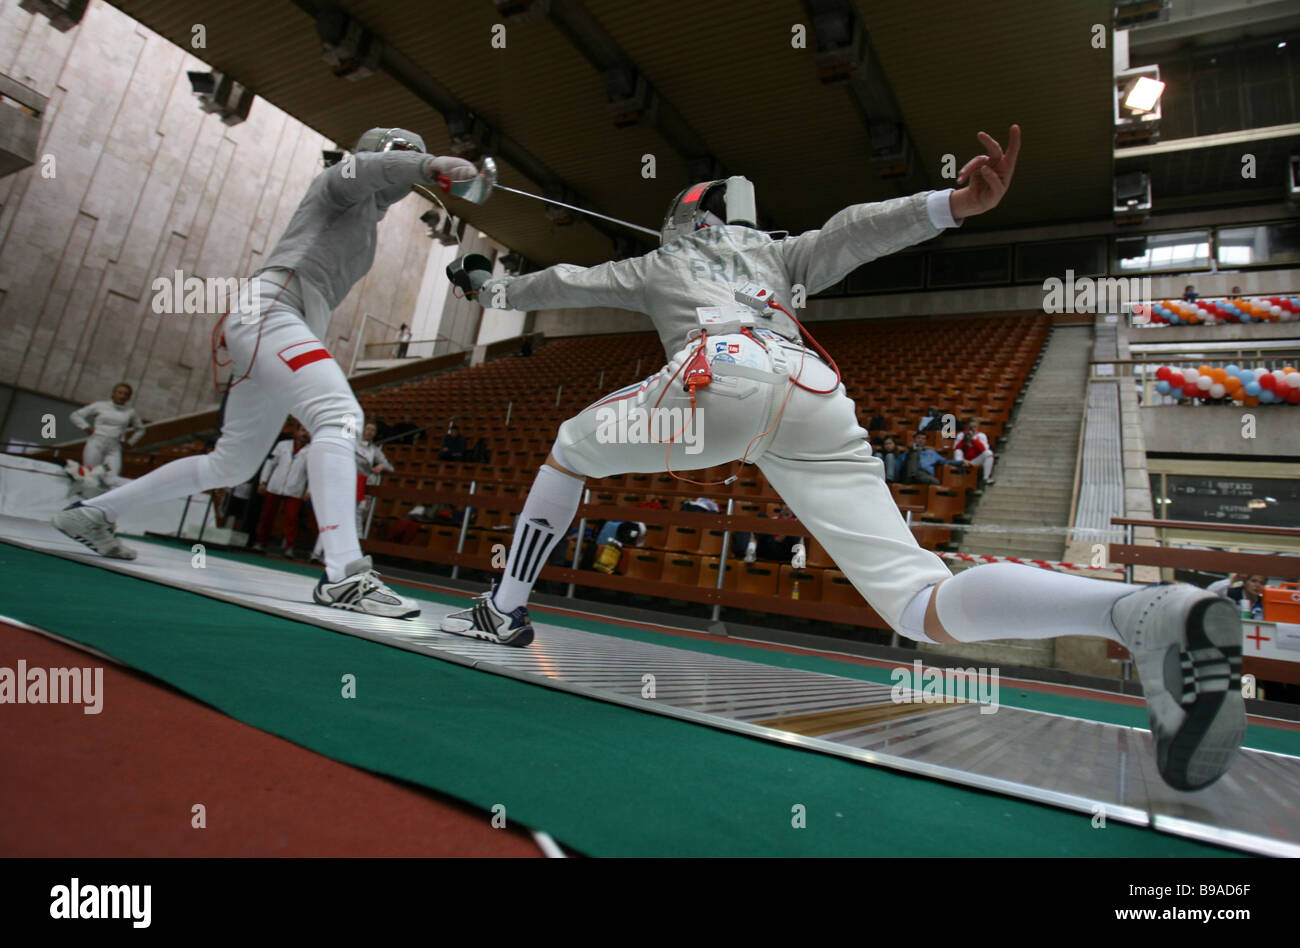 International fencing tournament Moscow Saber 2006 - Stock Image